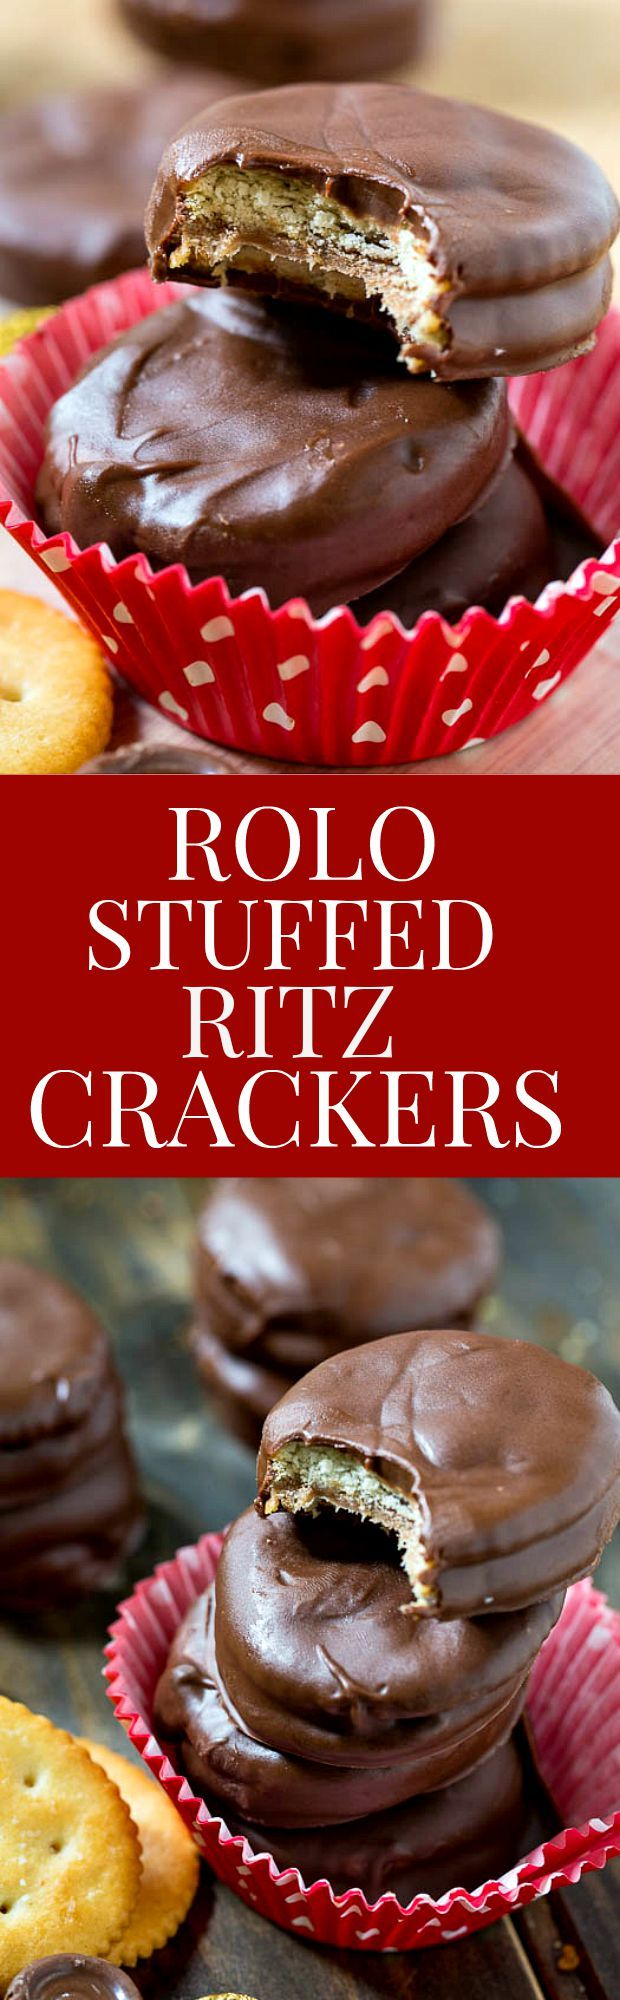 Rolo Stuffed Ritz Crackers - Covered in chocolate. The best sweet and salty treat!